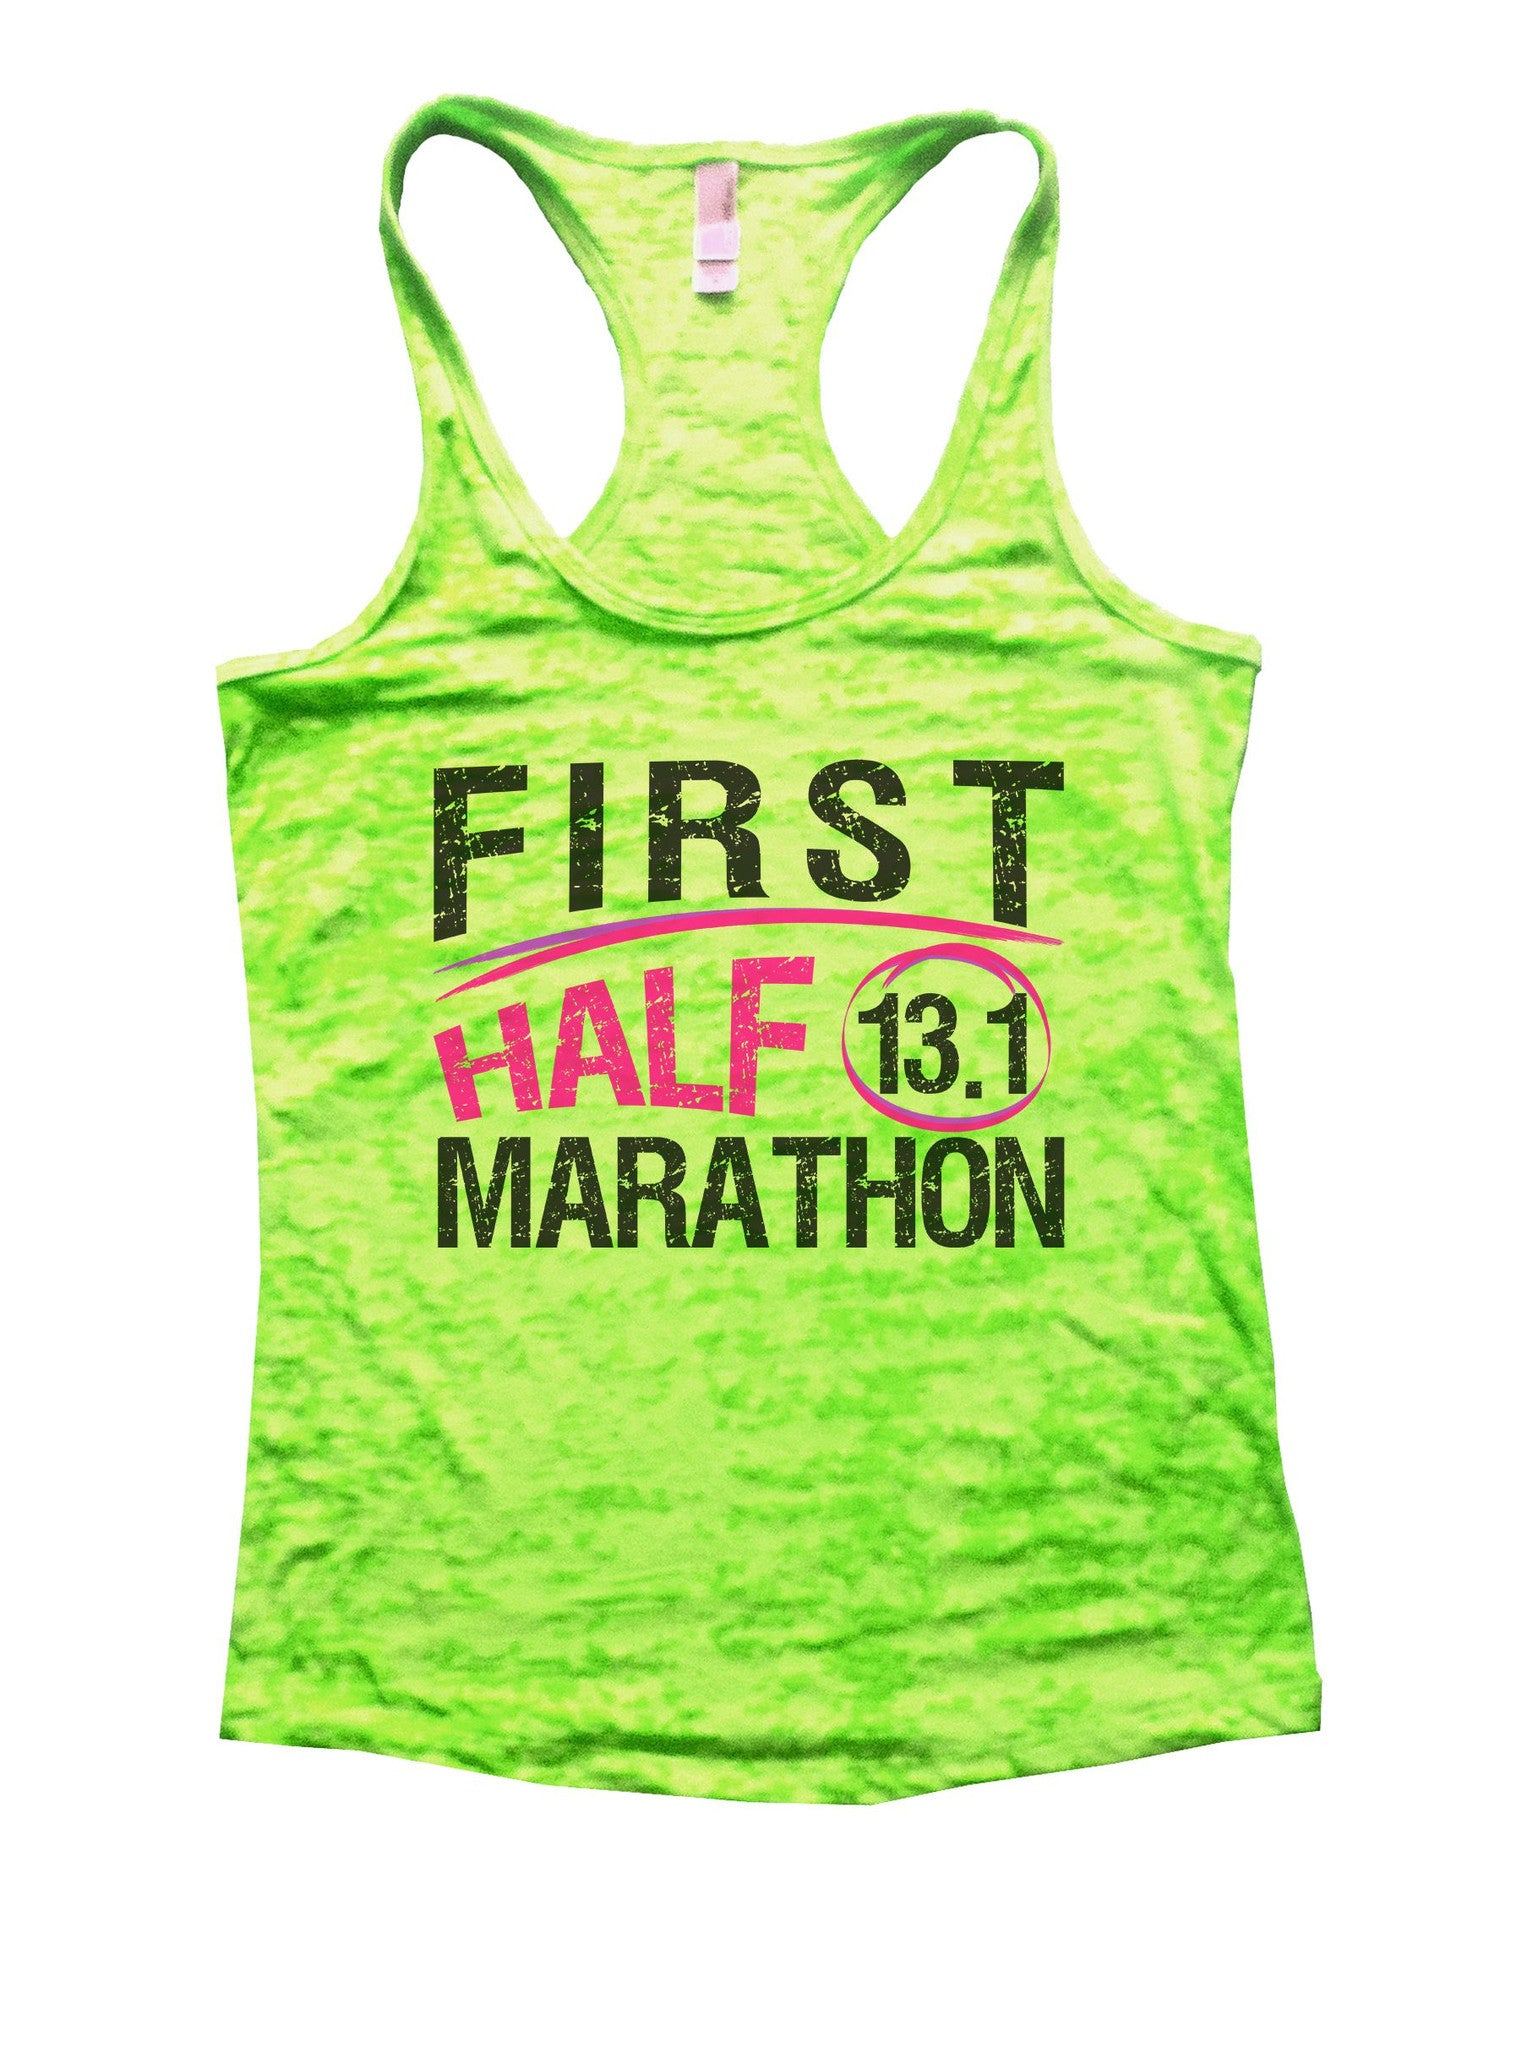 First Half 13.1 Marathon Burnout Tank Top By BurnoutTankTops.com - 1035 - Funny Shirts Tank Tops Burnouts and Triblends  - 1